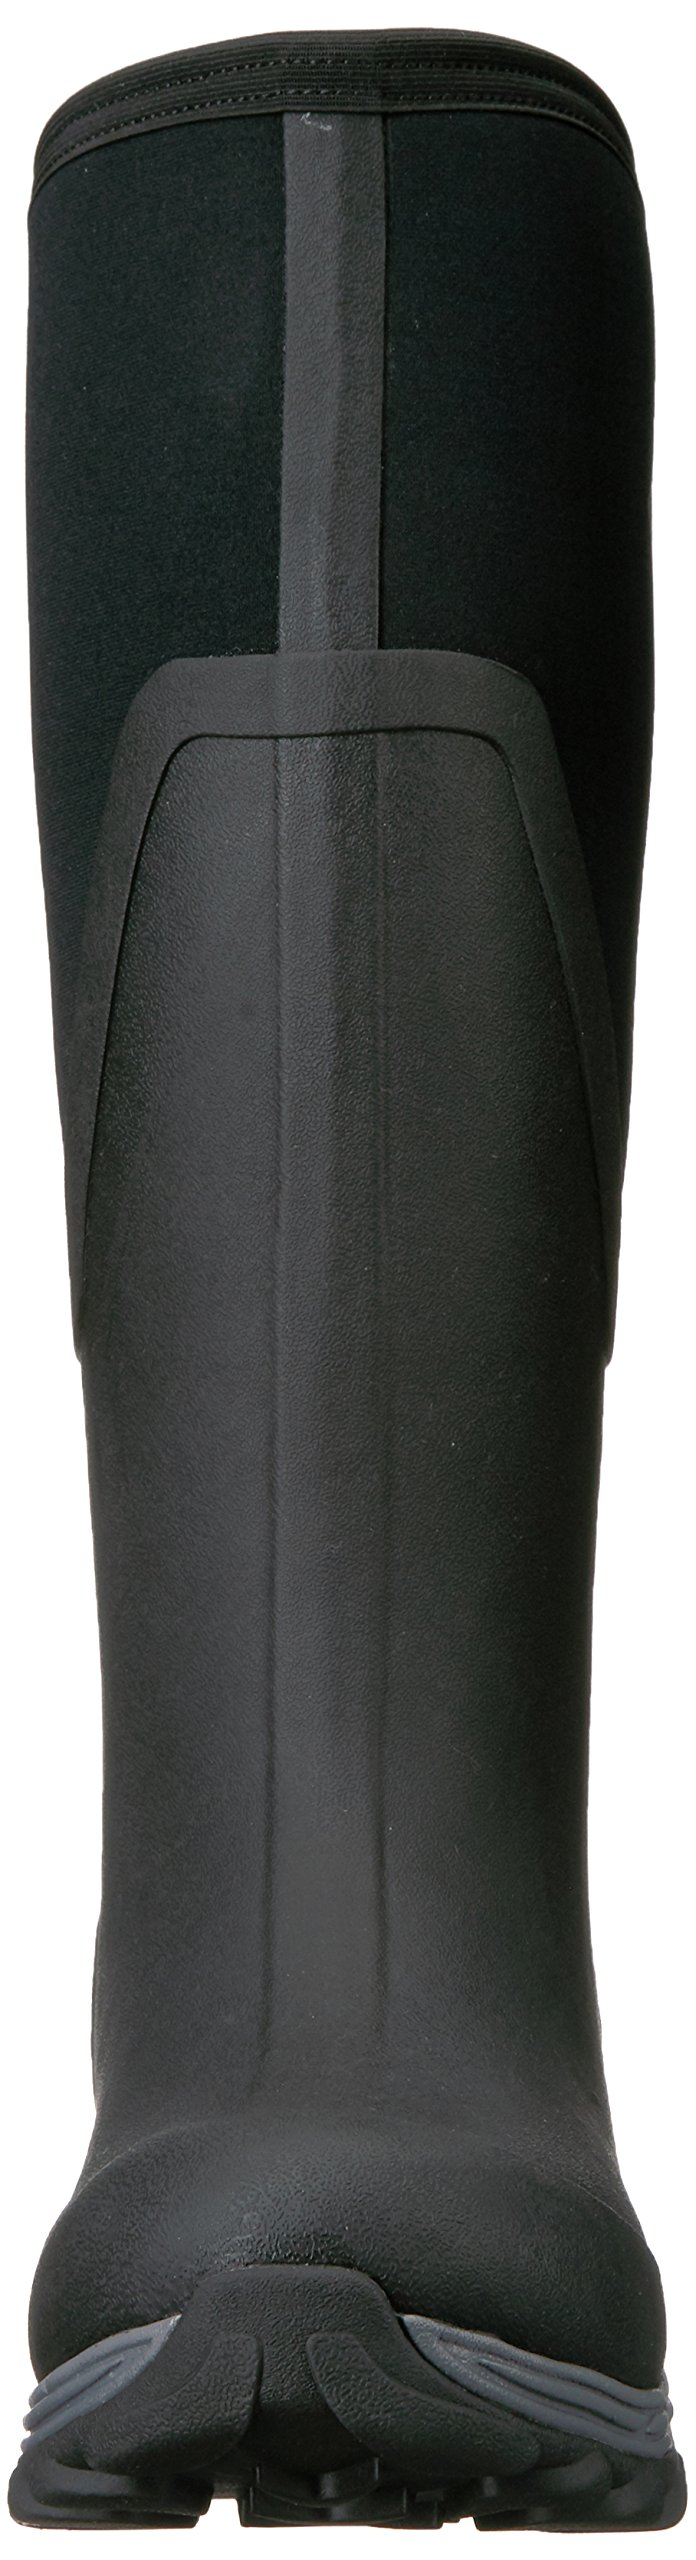 Muck Boot Women's Arctic Sport II Tall Snow Boot, Black, 7 US/7 M US by Muck Boot (Image #4)